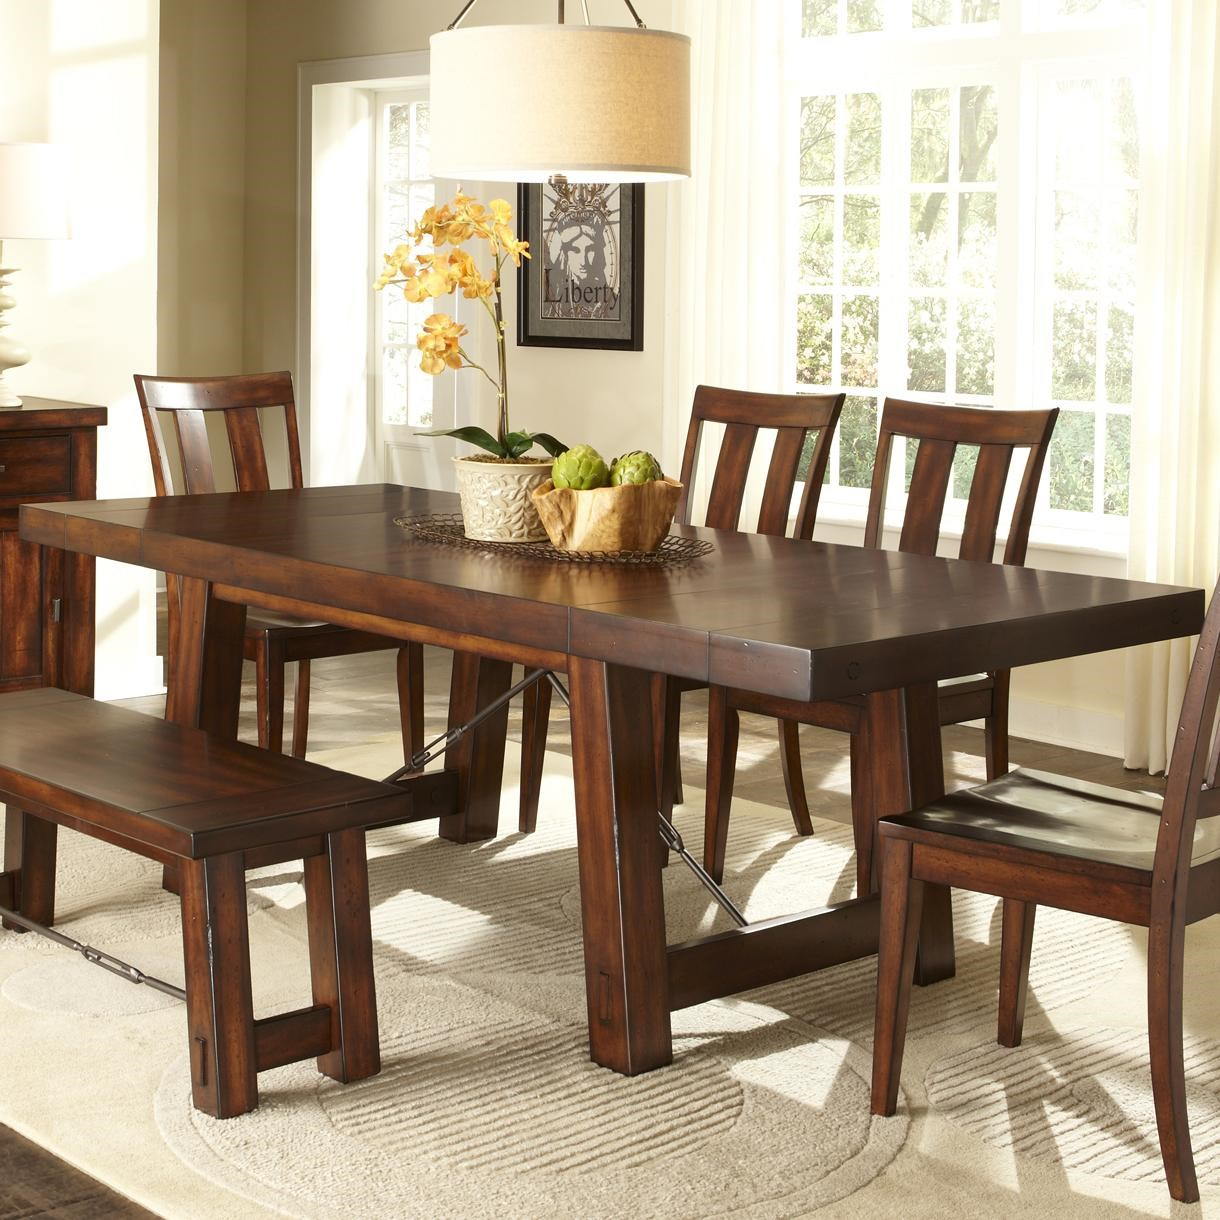 Tahoe Trestle Table with Iron Support Stretcher and Turnbuckle